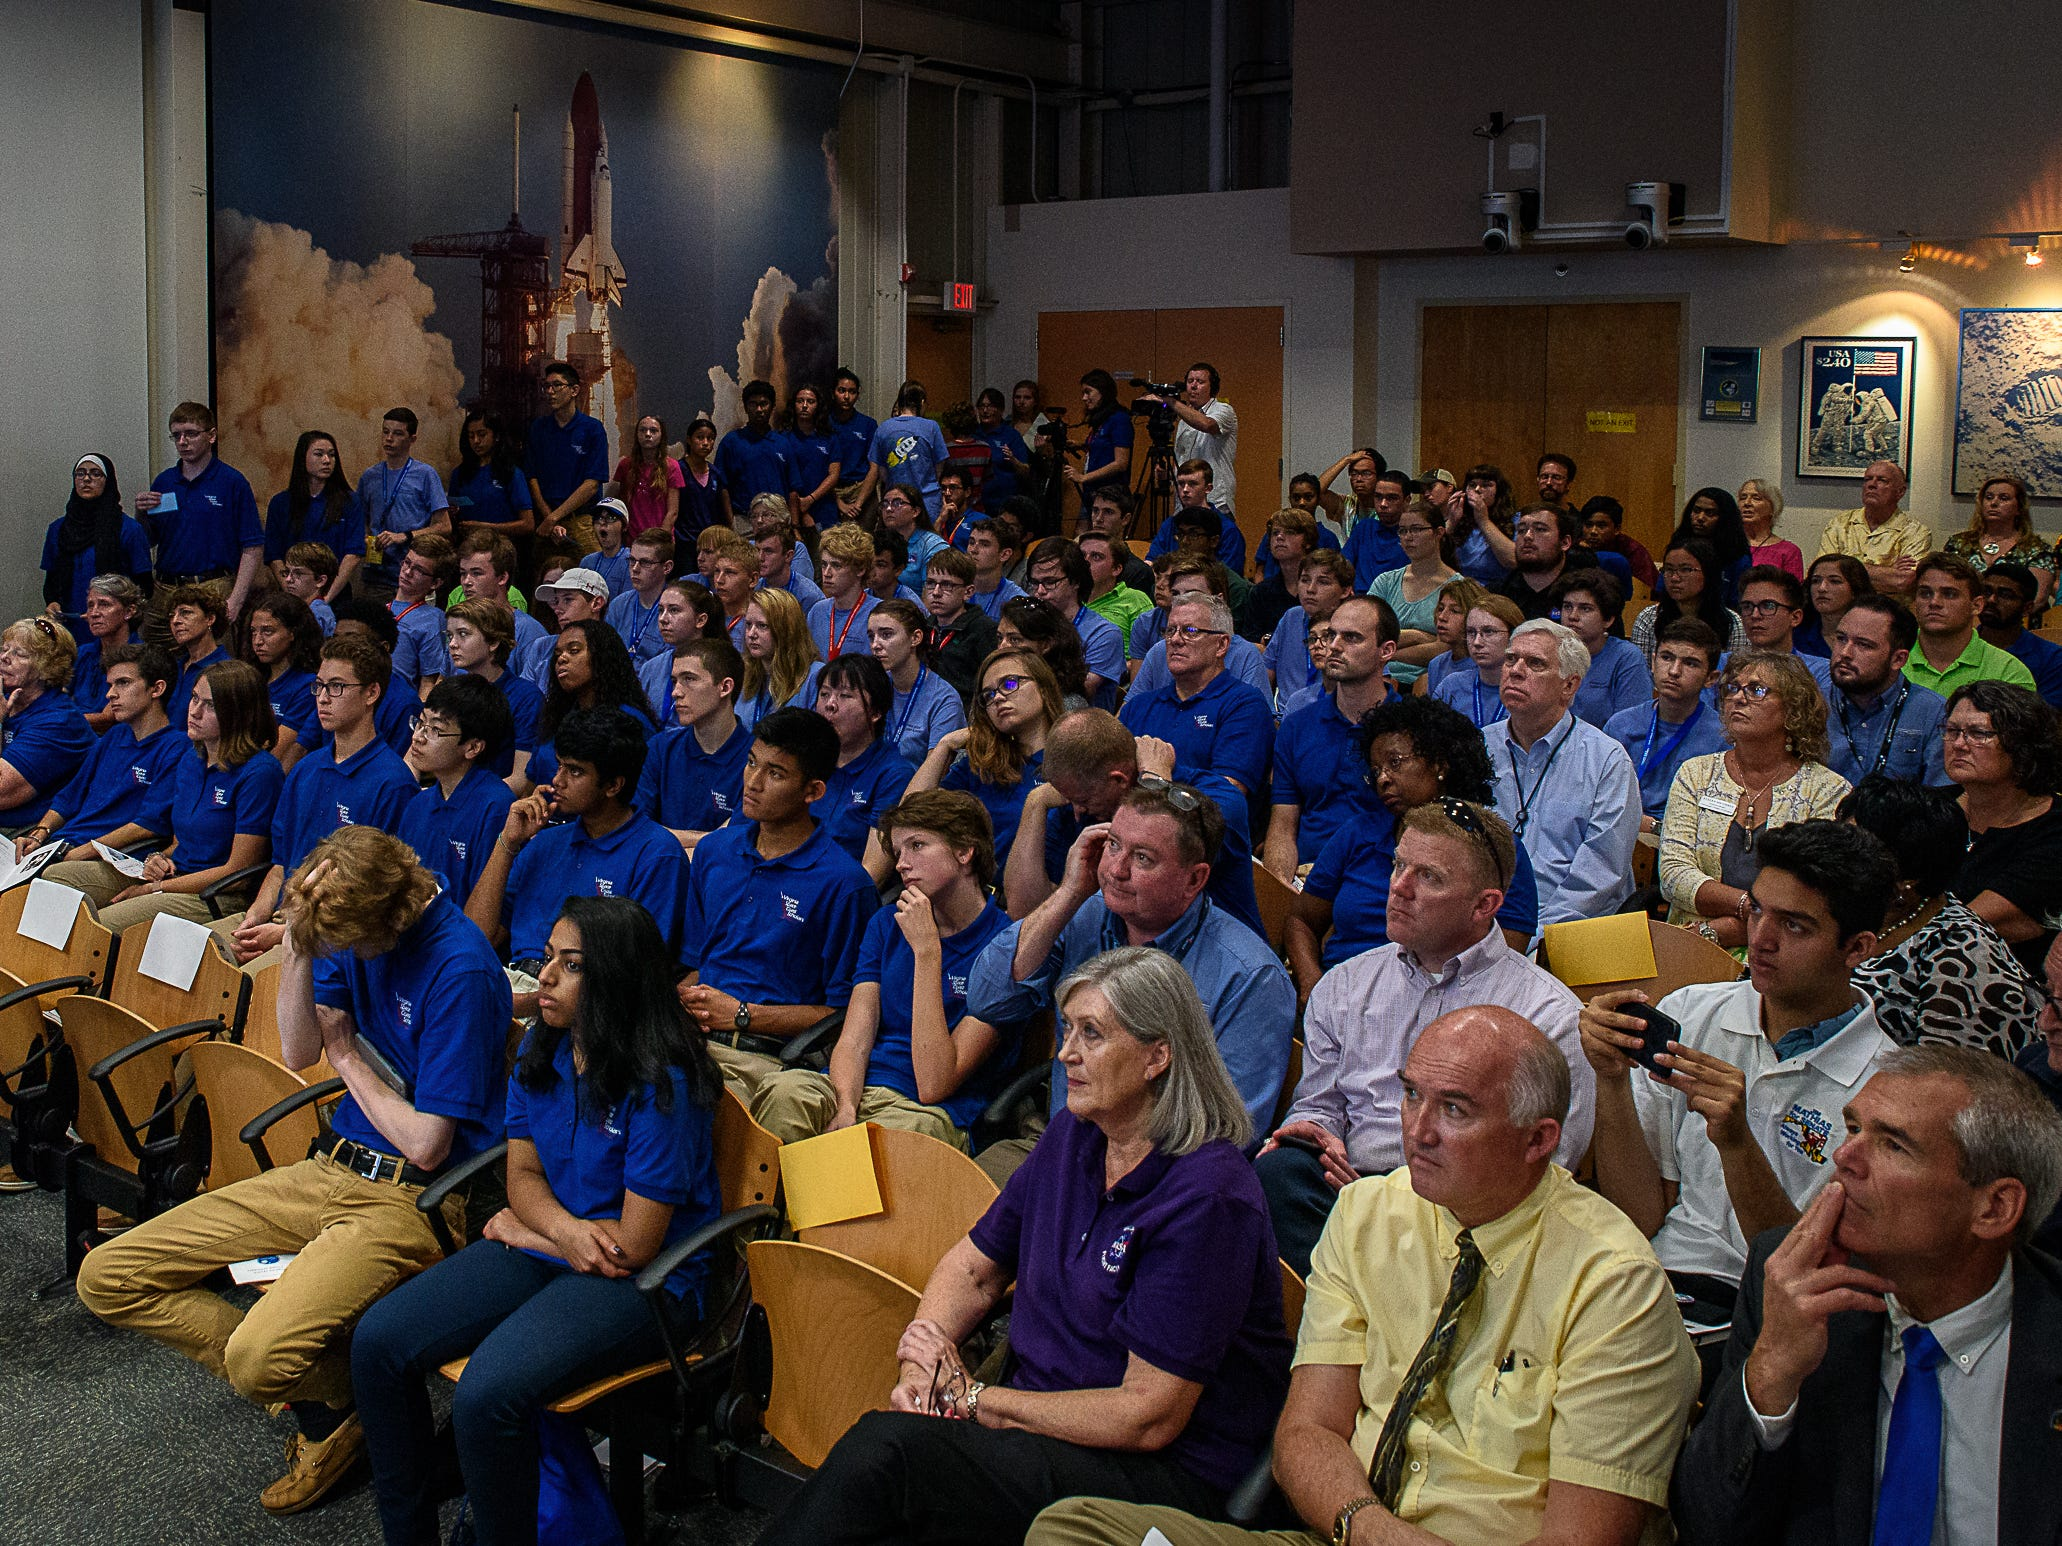 Facilitator Victoria Danna and a student from The Virginia Space Flight academy pose a question to astronaut Andrew Feustel in front of the packed auditorium at Wallops Visitors center. Students at Wallops Flight Facility spoke to crews while aboard the International Space Station as part of NASA's Year of Education on Station program on Aug. 2, 2018.